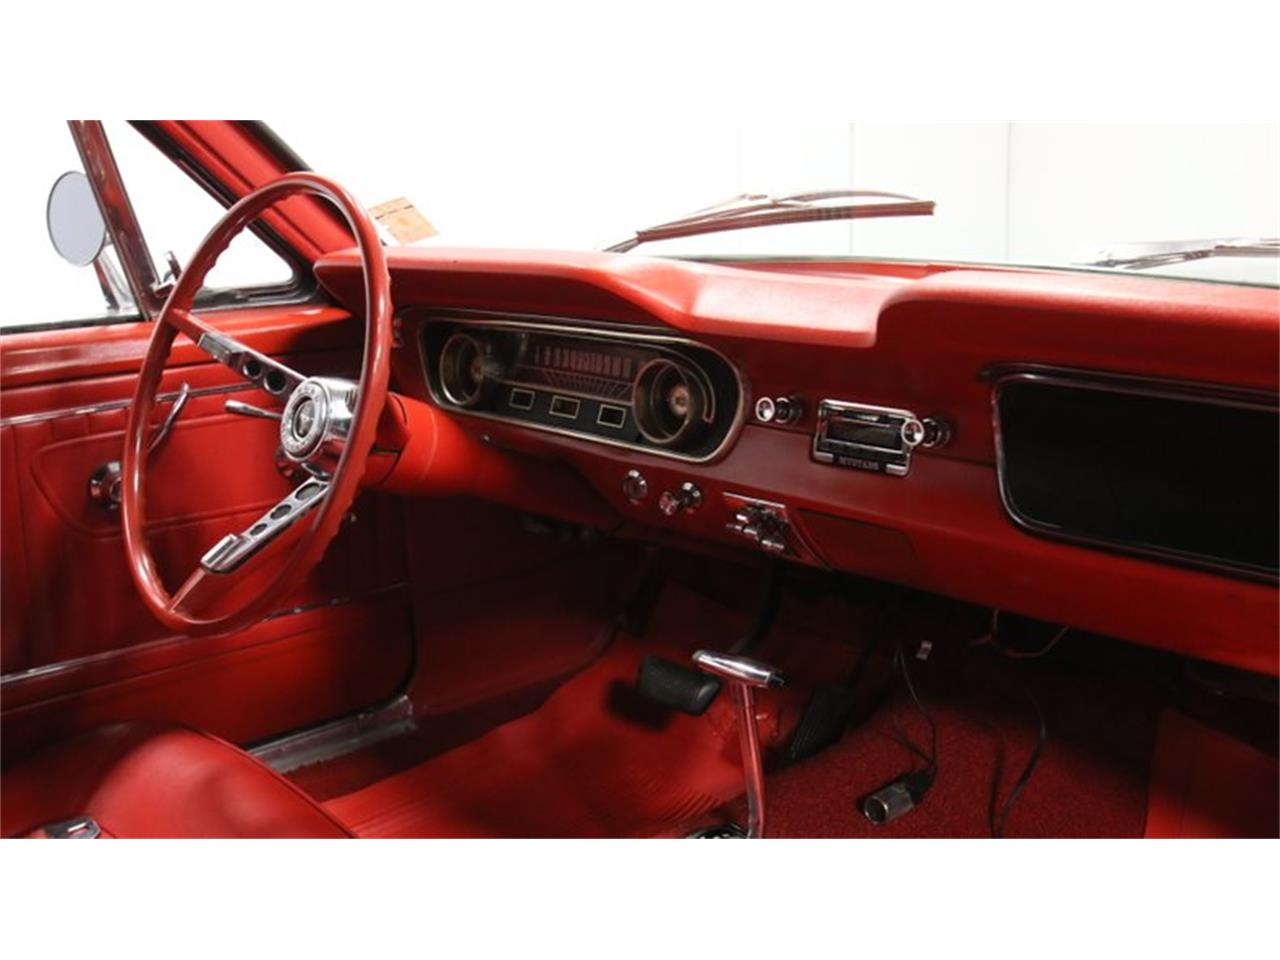 Large Picture of Classic 1964 Ford Mustang located in Lithia Springs Georgia Offered by Streetside Classics - Atlanta - QA2K